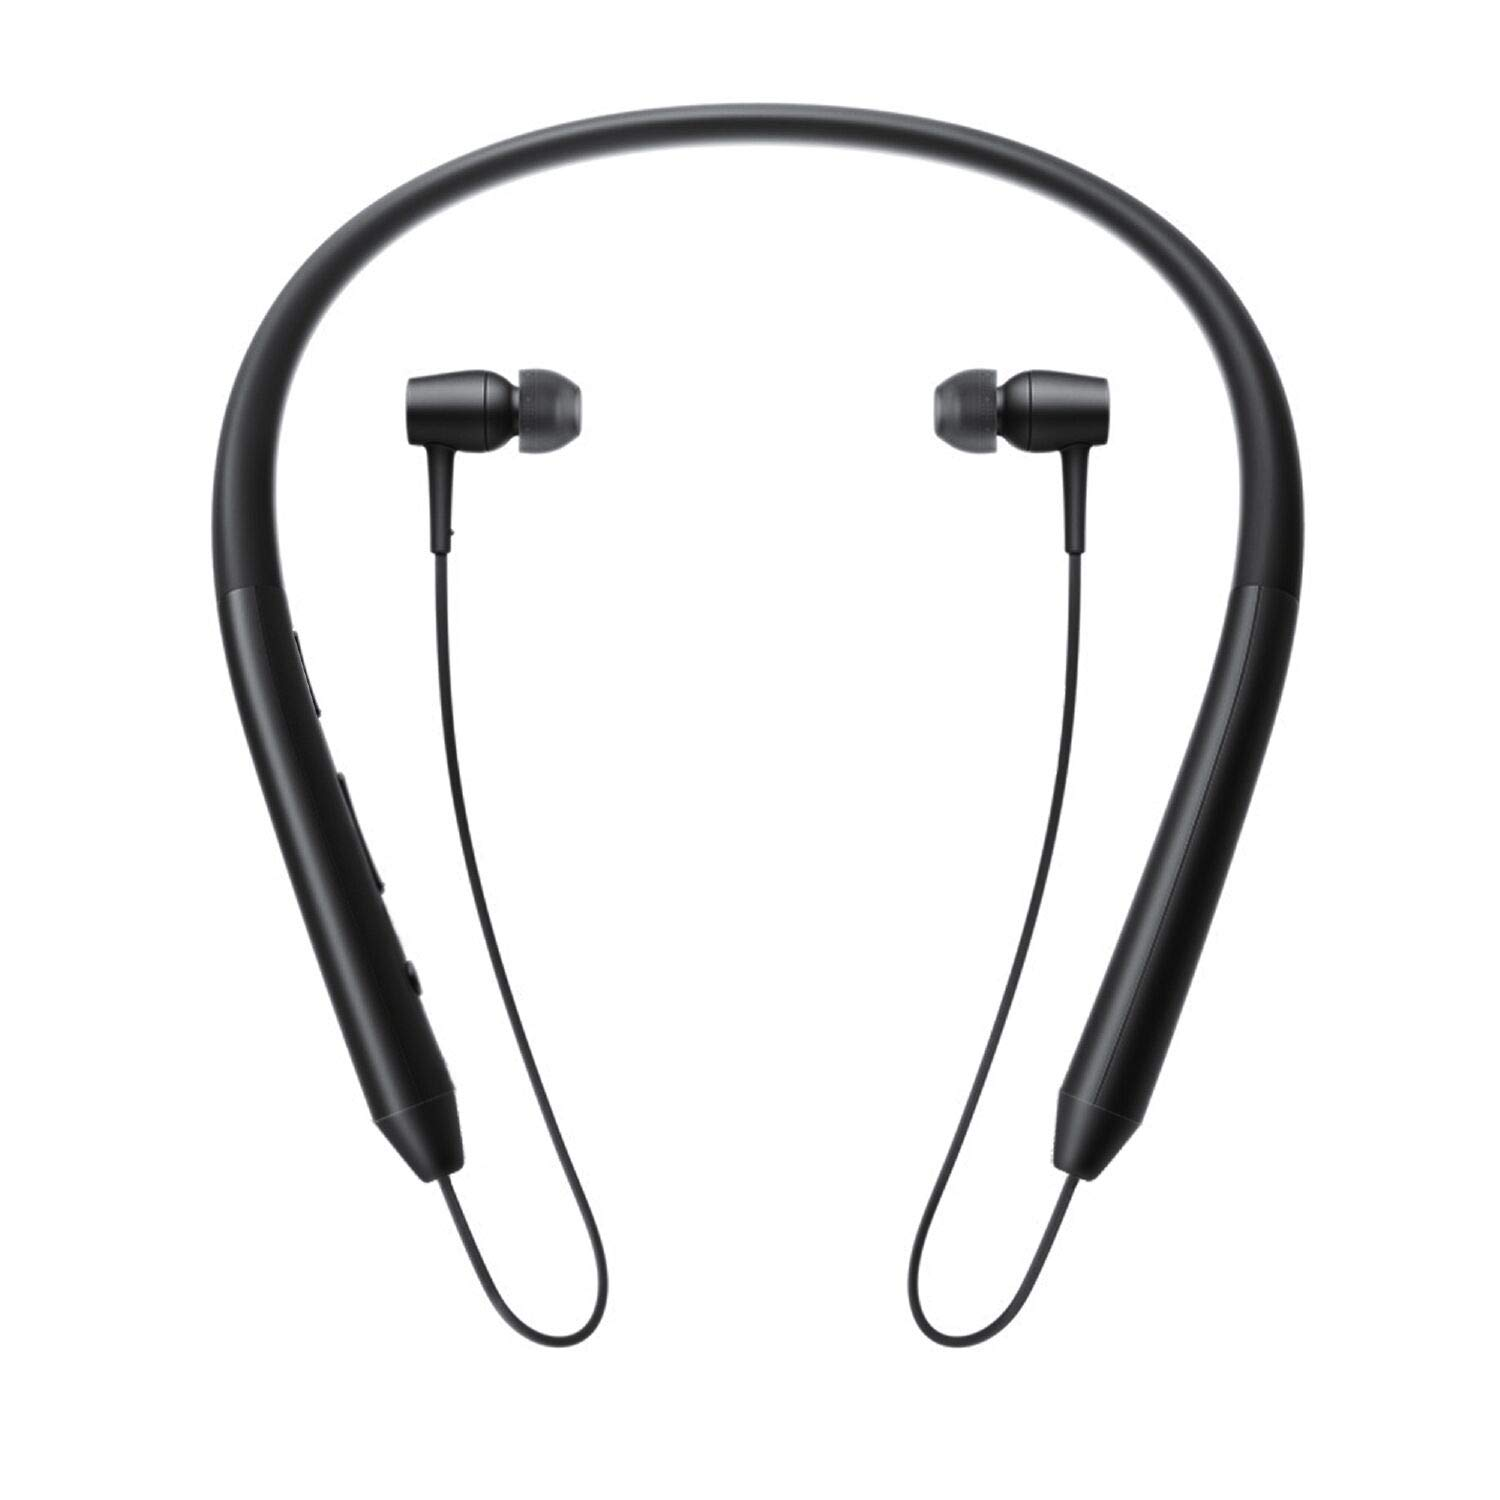 Audiolux Voice Assist Wireless Neckband Headset, Works with Siri and Google  Assistant, 8 Hour Battery Life